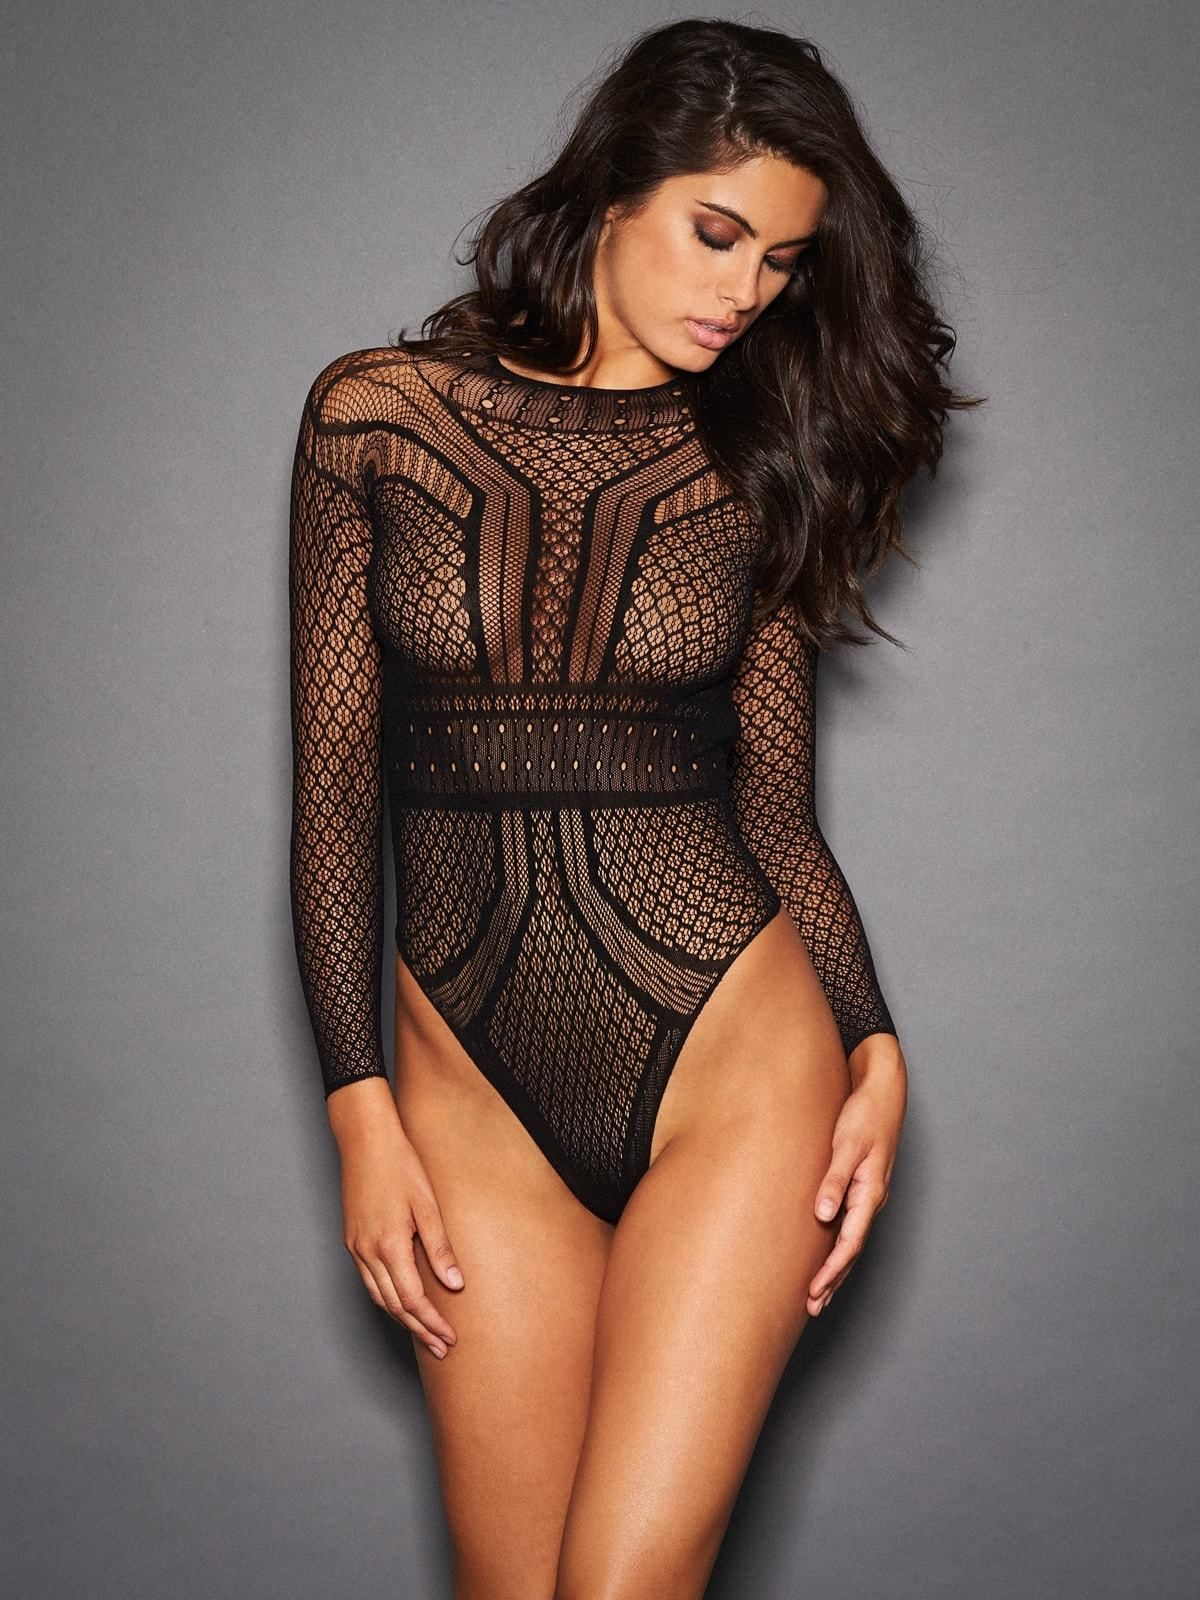 Cause a stir in the Joana Jade nbsp Bodysuit ce57f9d9ca9